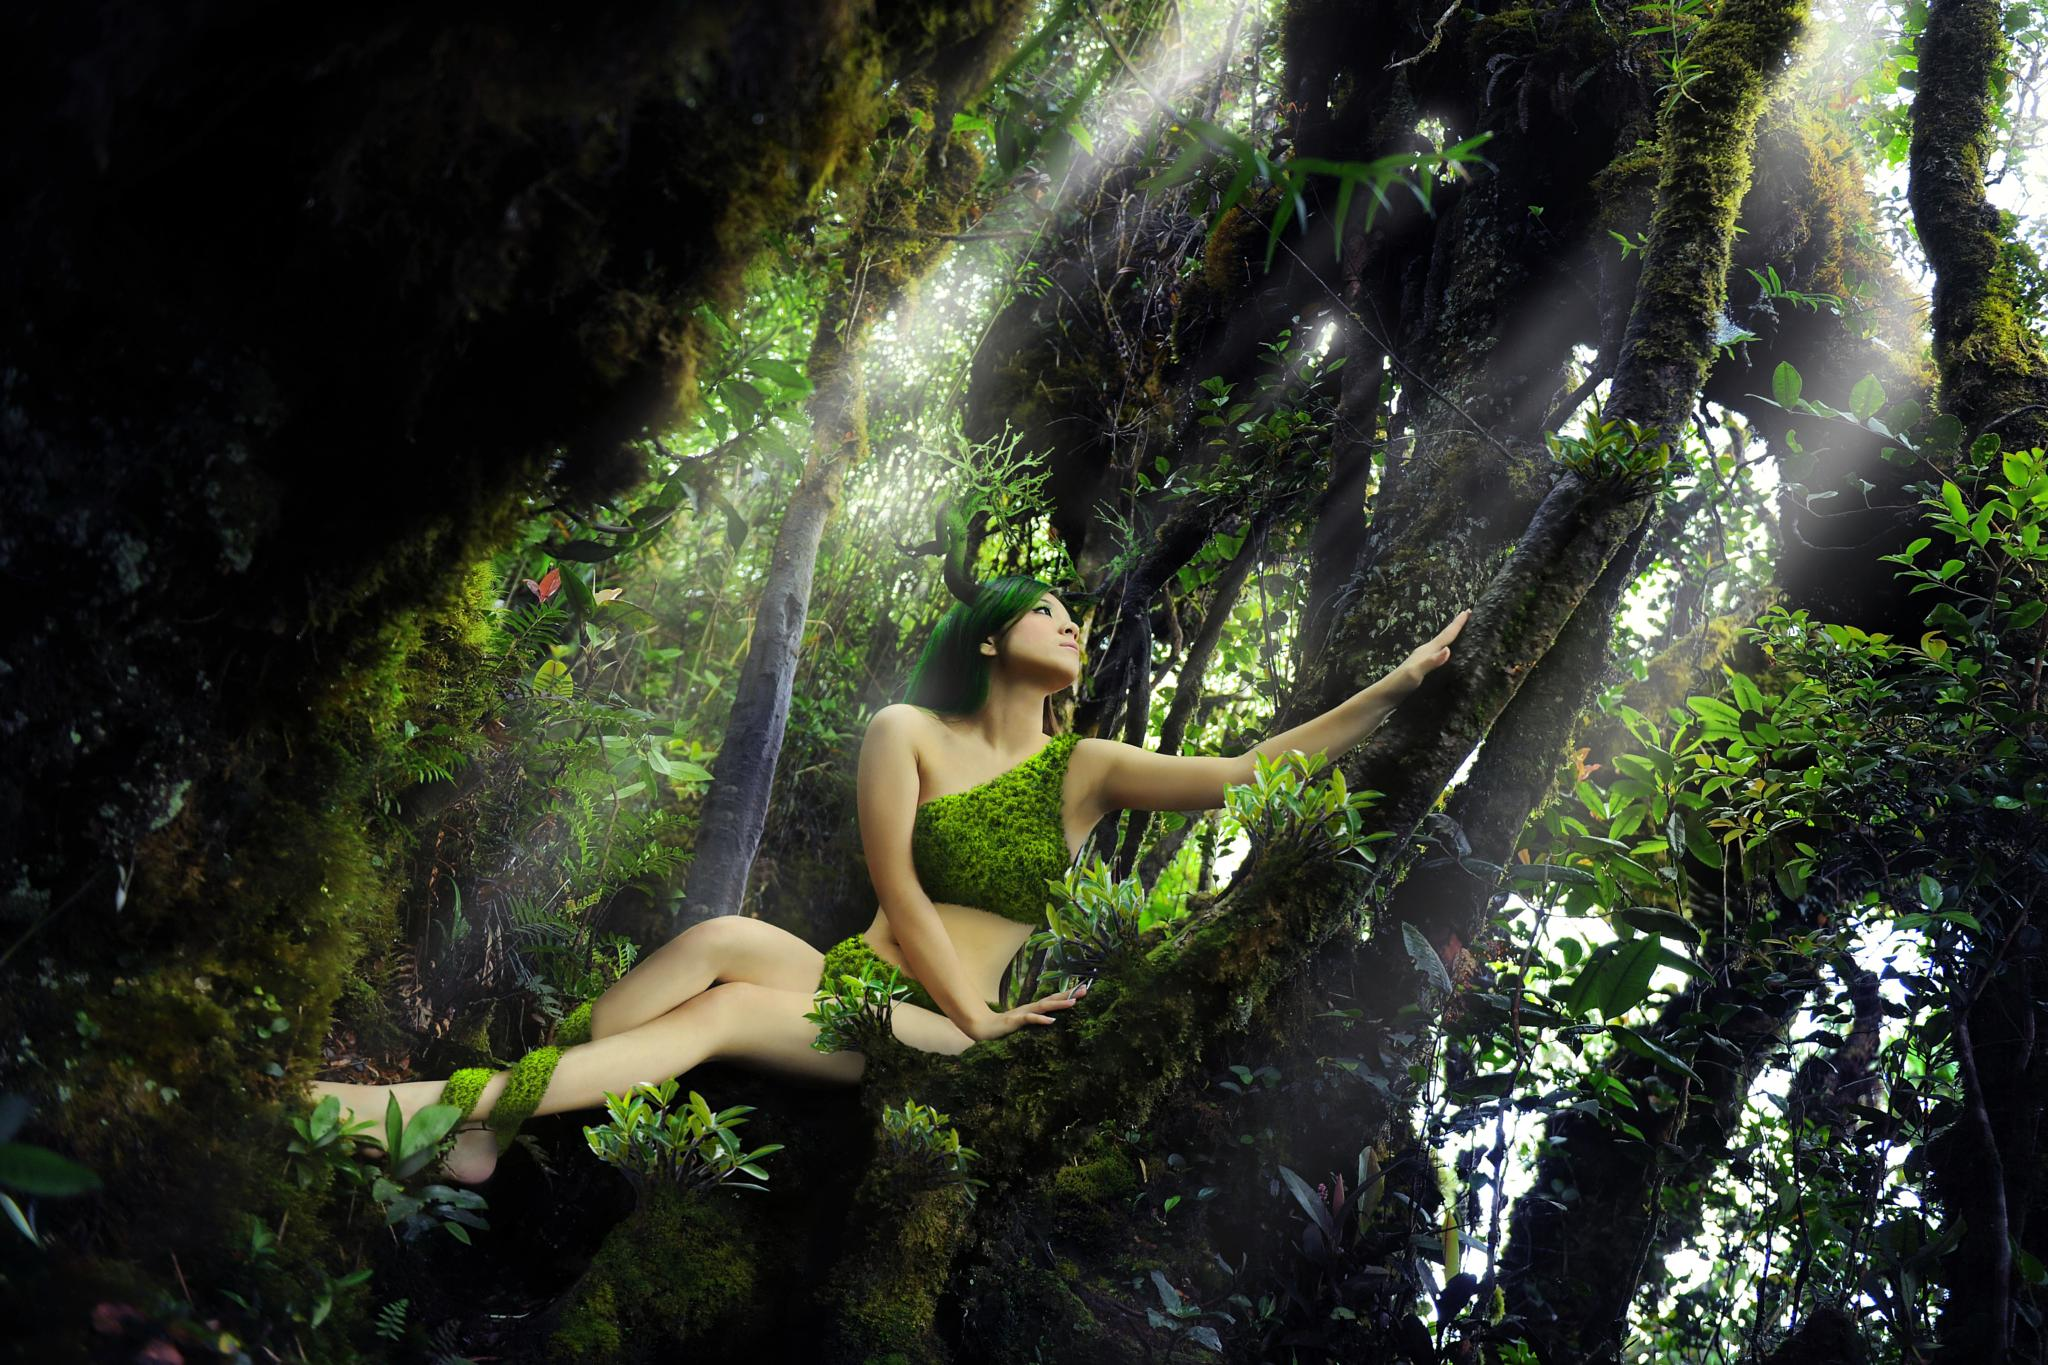 SPIRIT OF THE FOREST by SAM LIM